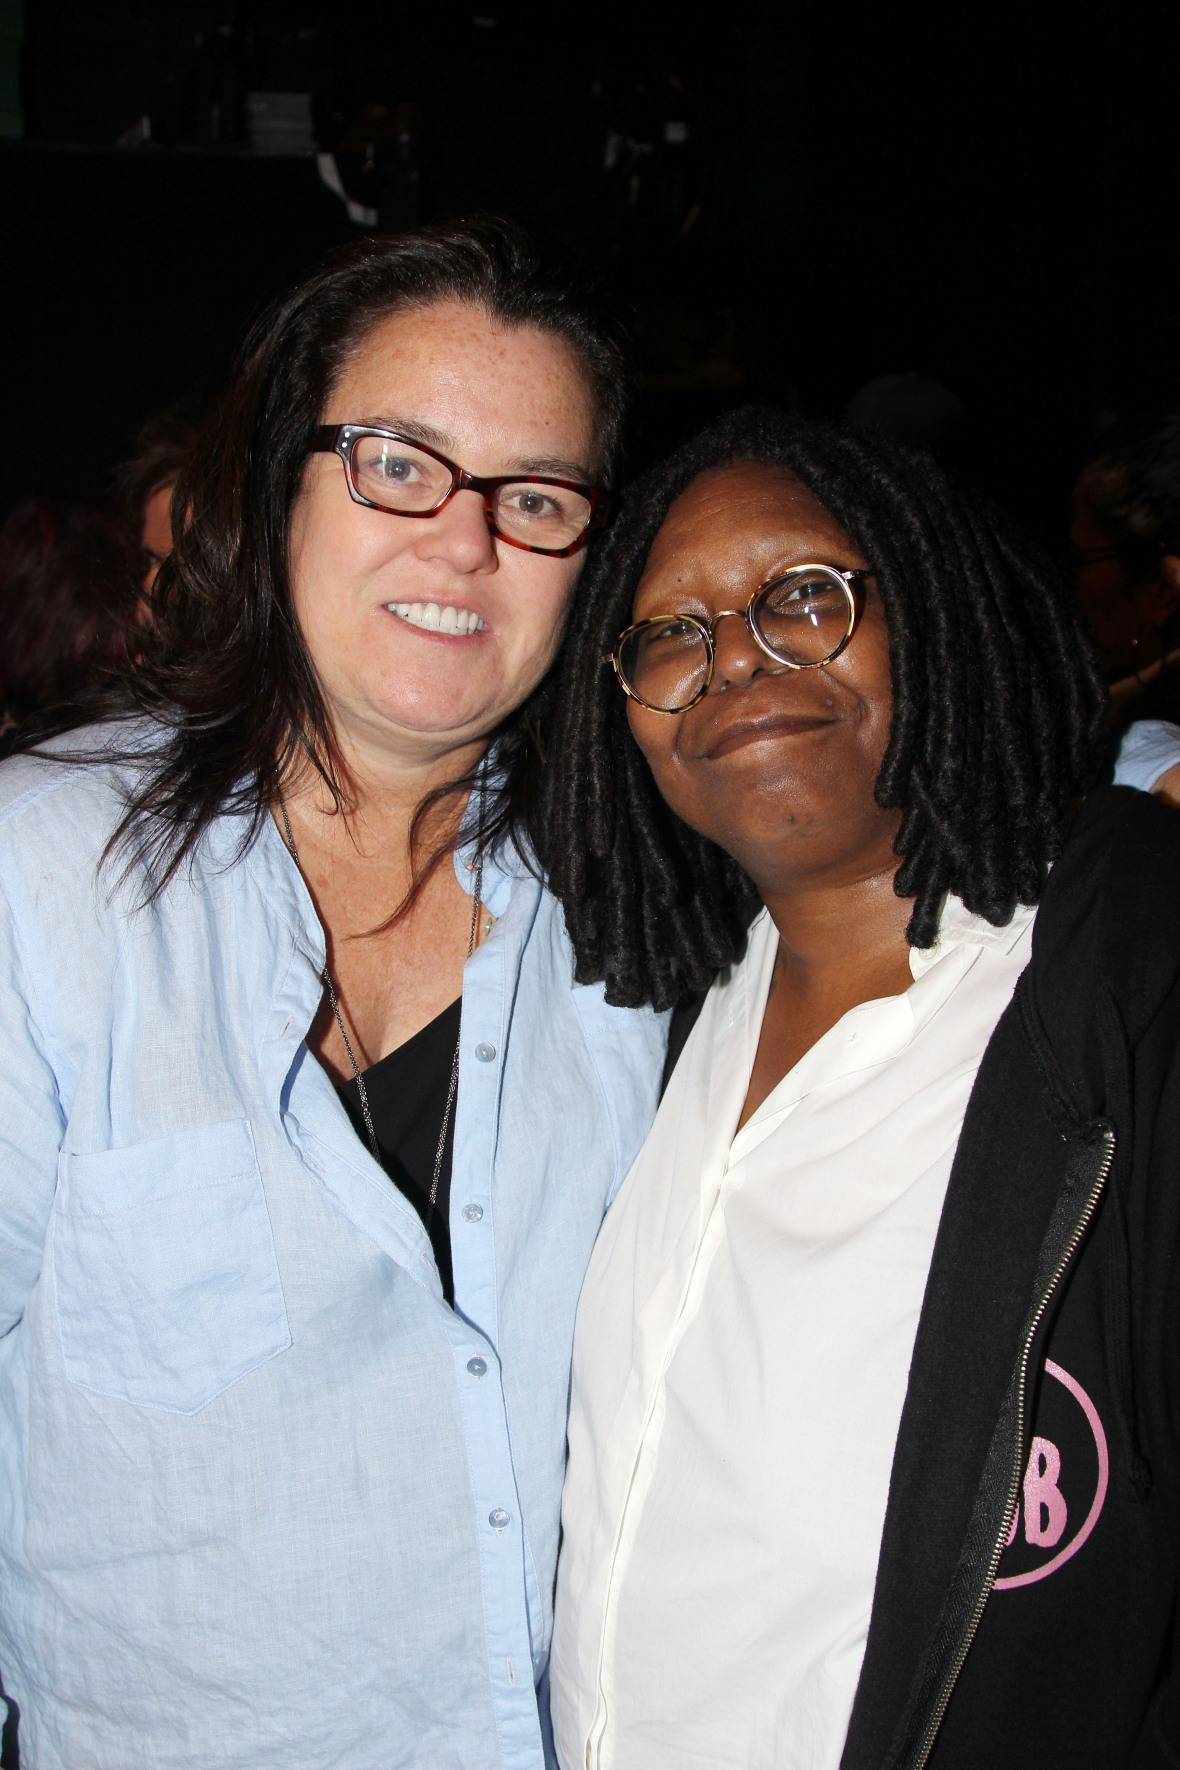 whoopi goldberg & rose o'donnell